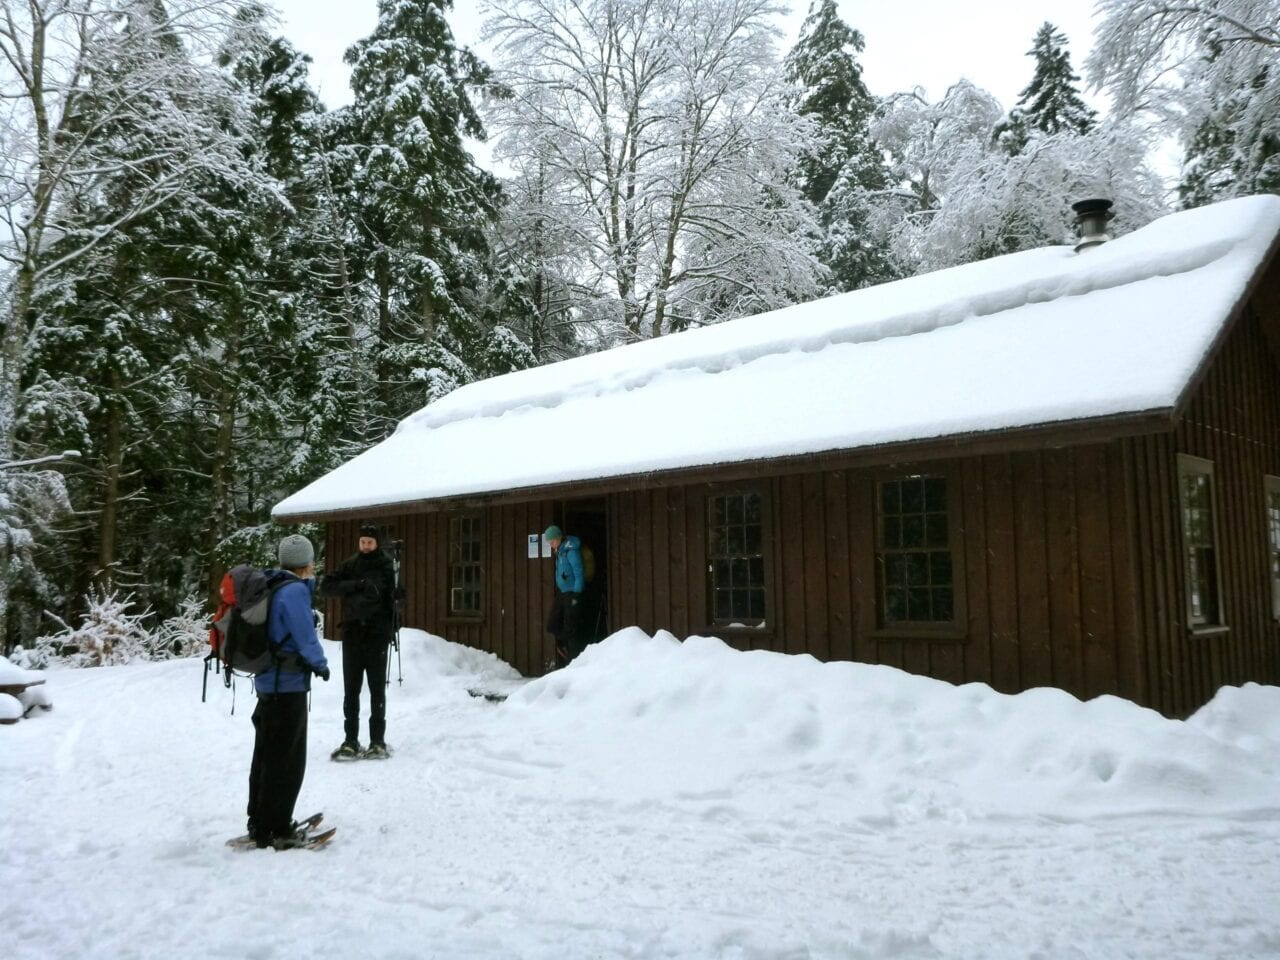 A few hikers stand in front of a snowy cabin.